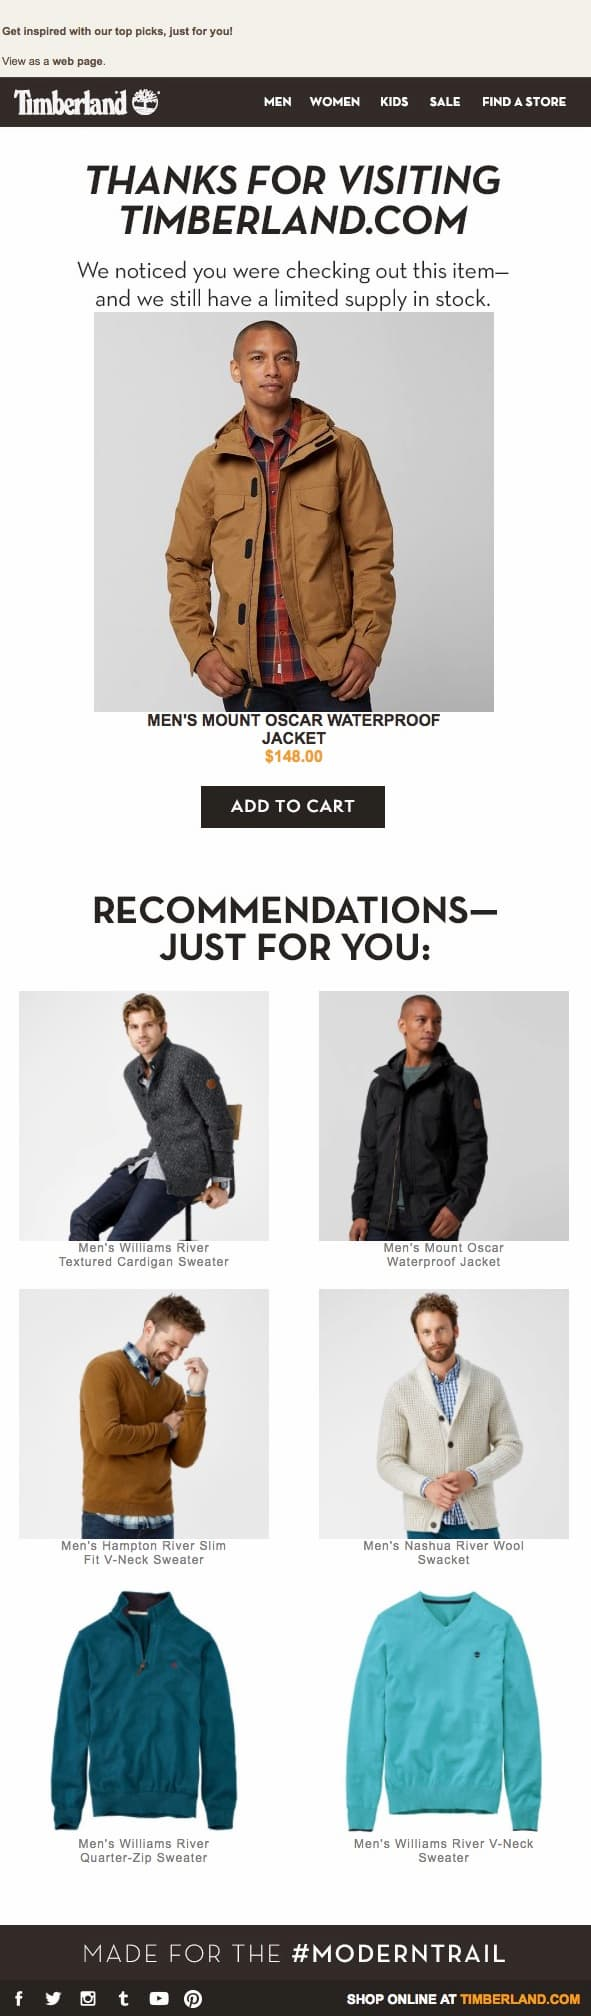 Personalized email message from Timberland.